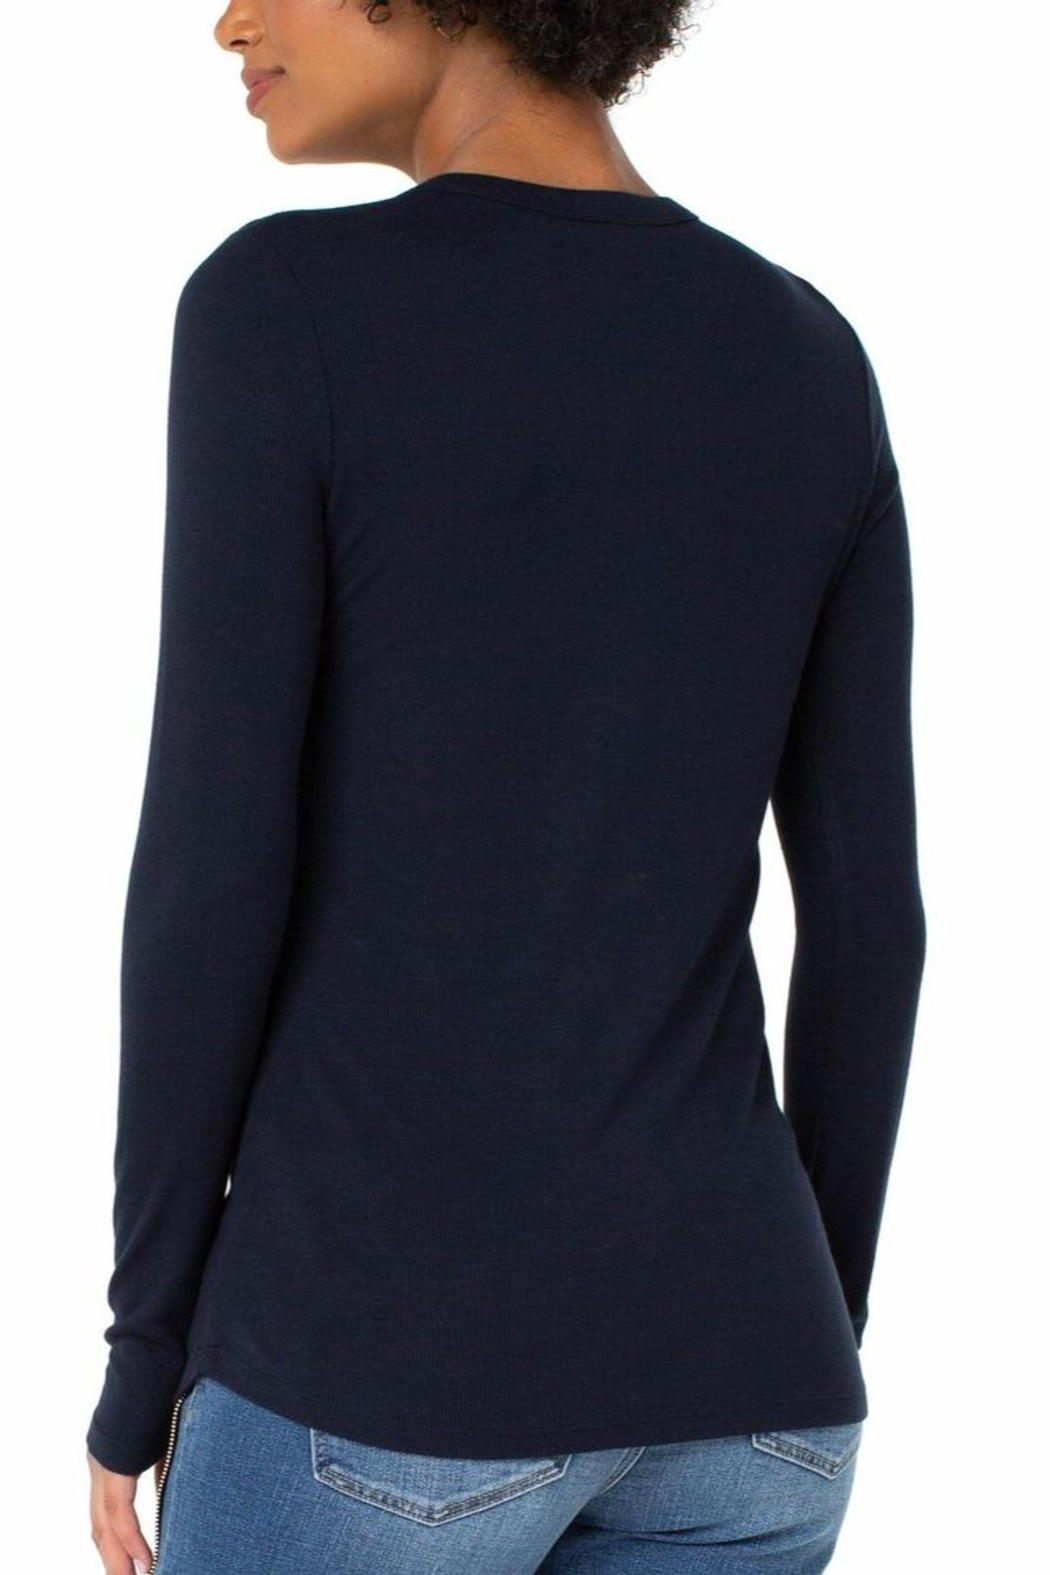 Liverpool Jean Company Knit Henley Top - Front Full Image